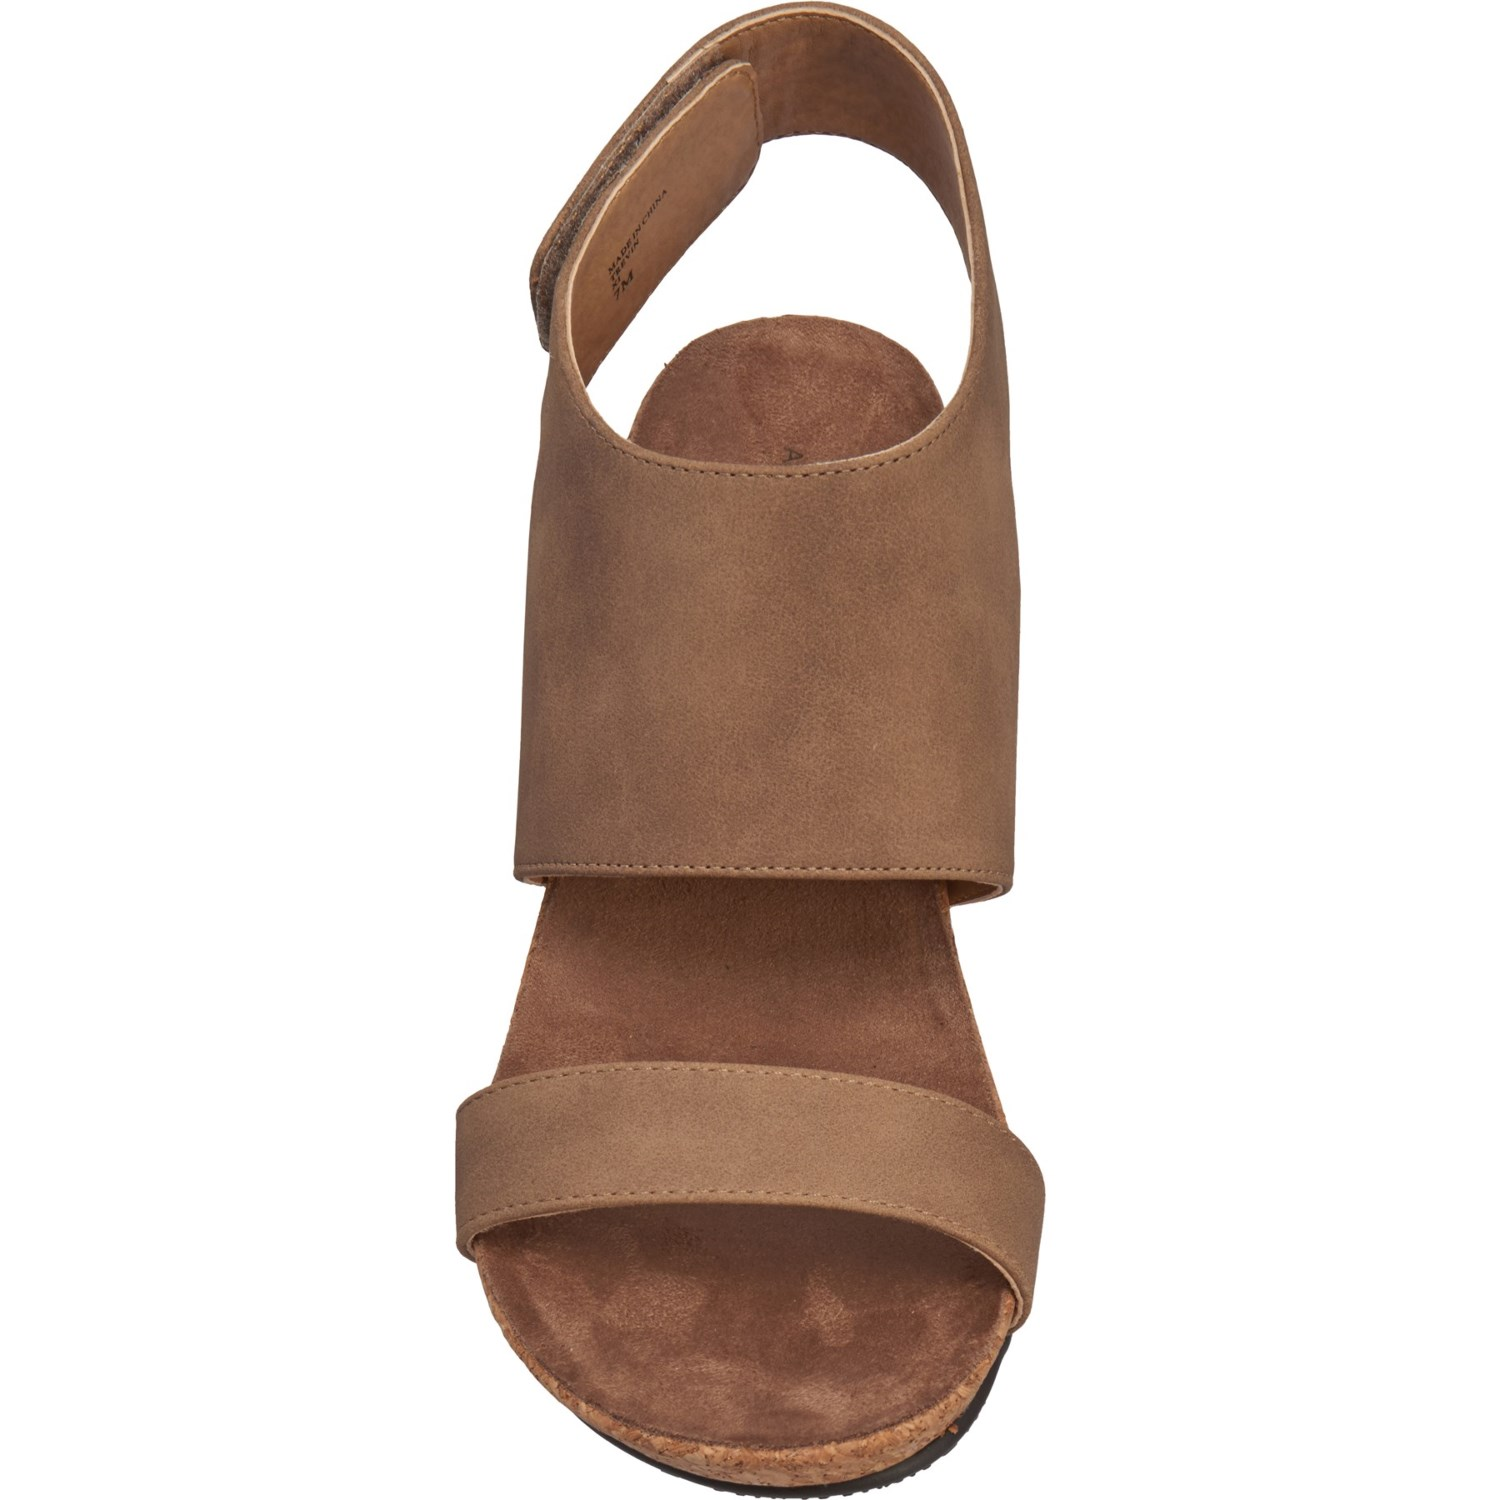 c70178e334 Adrienne Vittadini Trevin Wedge Sandals (For Women) - Save 55%